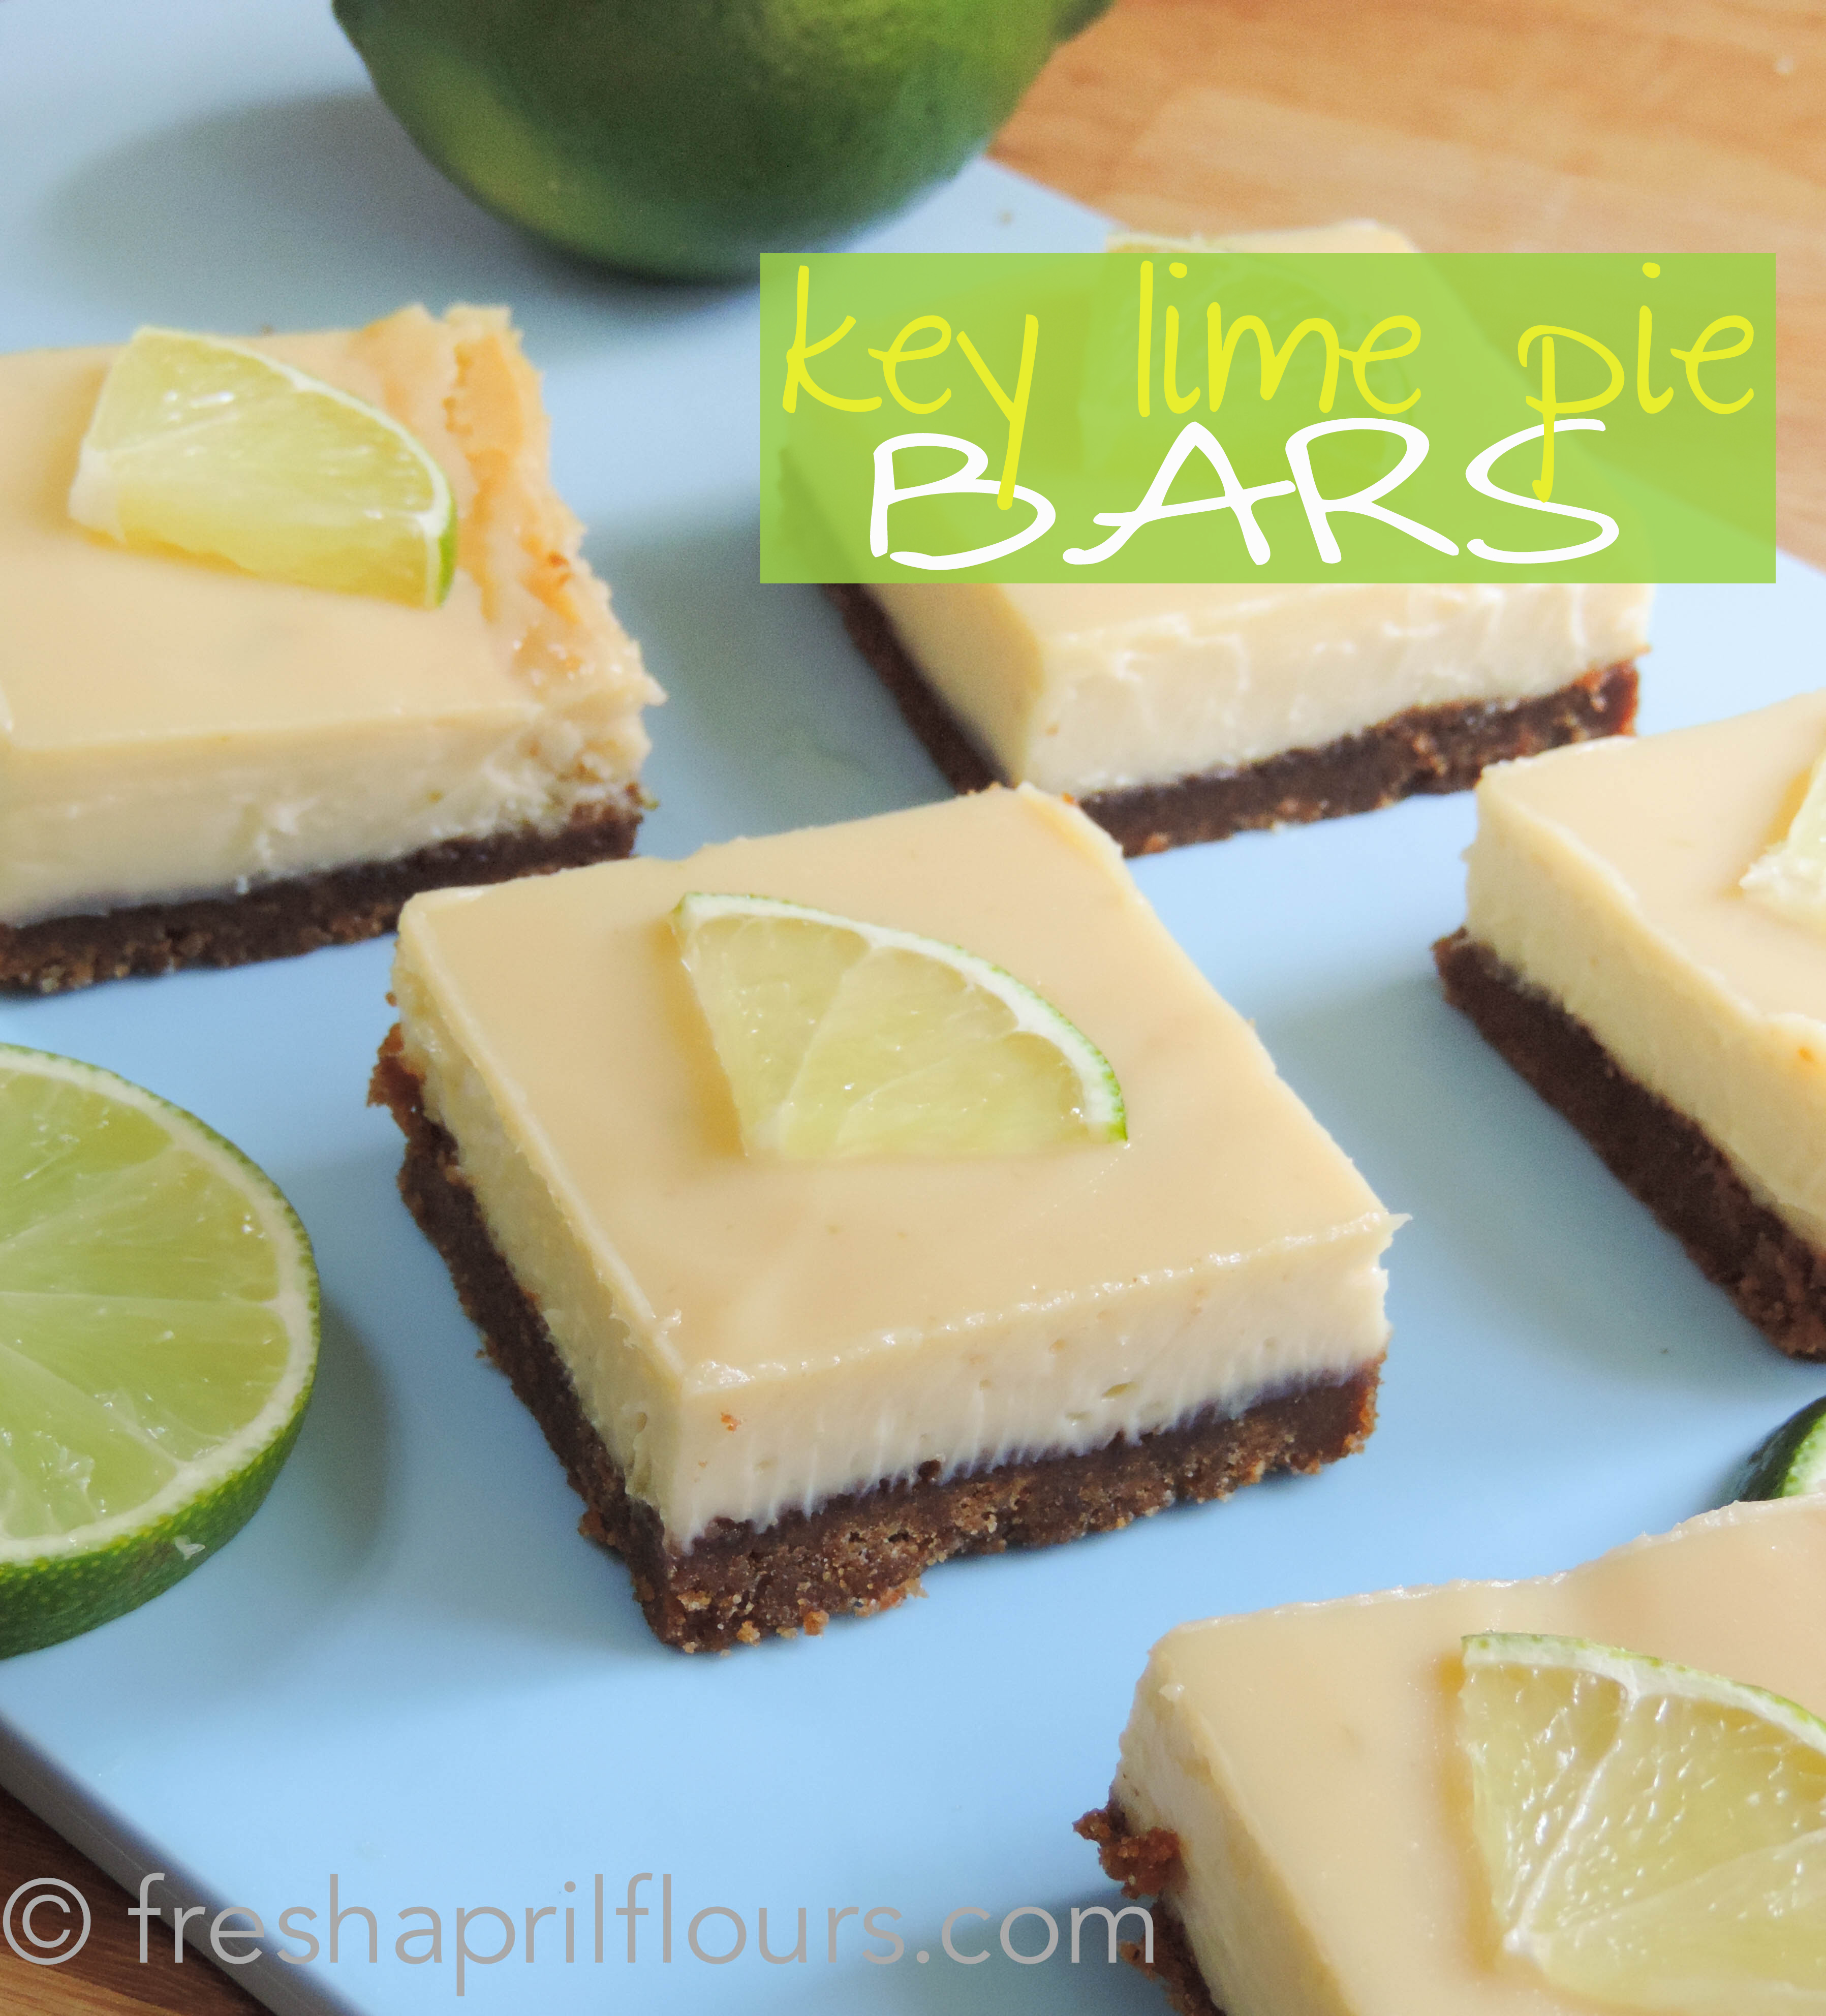 Key Lime Pie Bars: A creamy, tart filling sits on top of a buttery graham cracker crust... And so much easier than a whole pie!